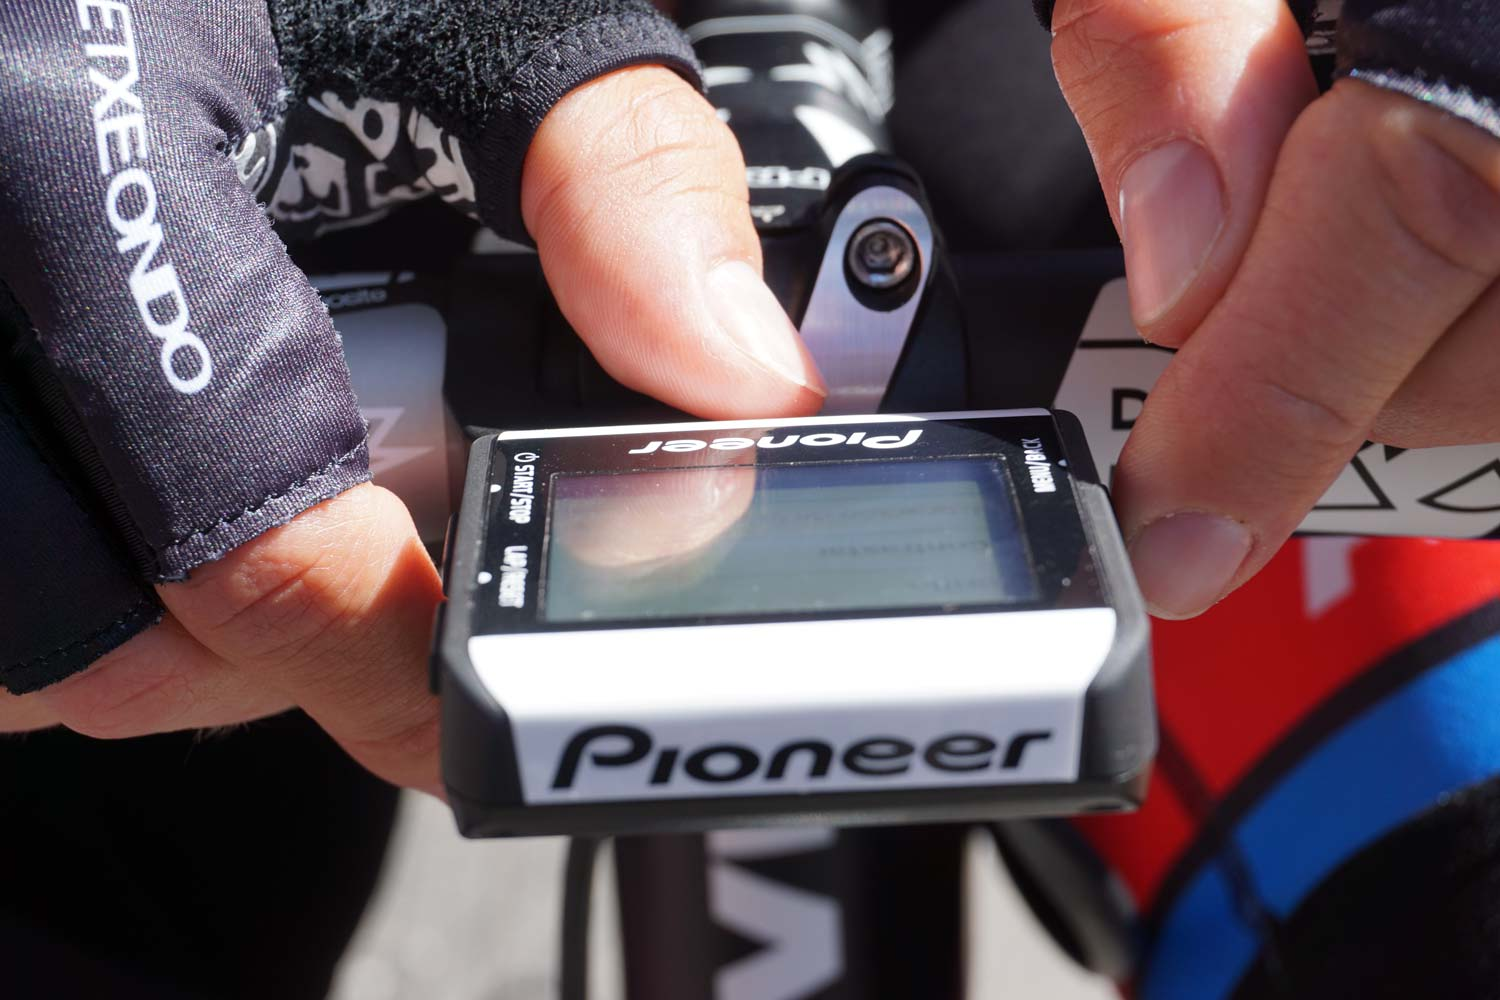 Simon Geschke adjusts his Pioneer power meter before a stage of the 2015 Tour Down Under.